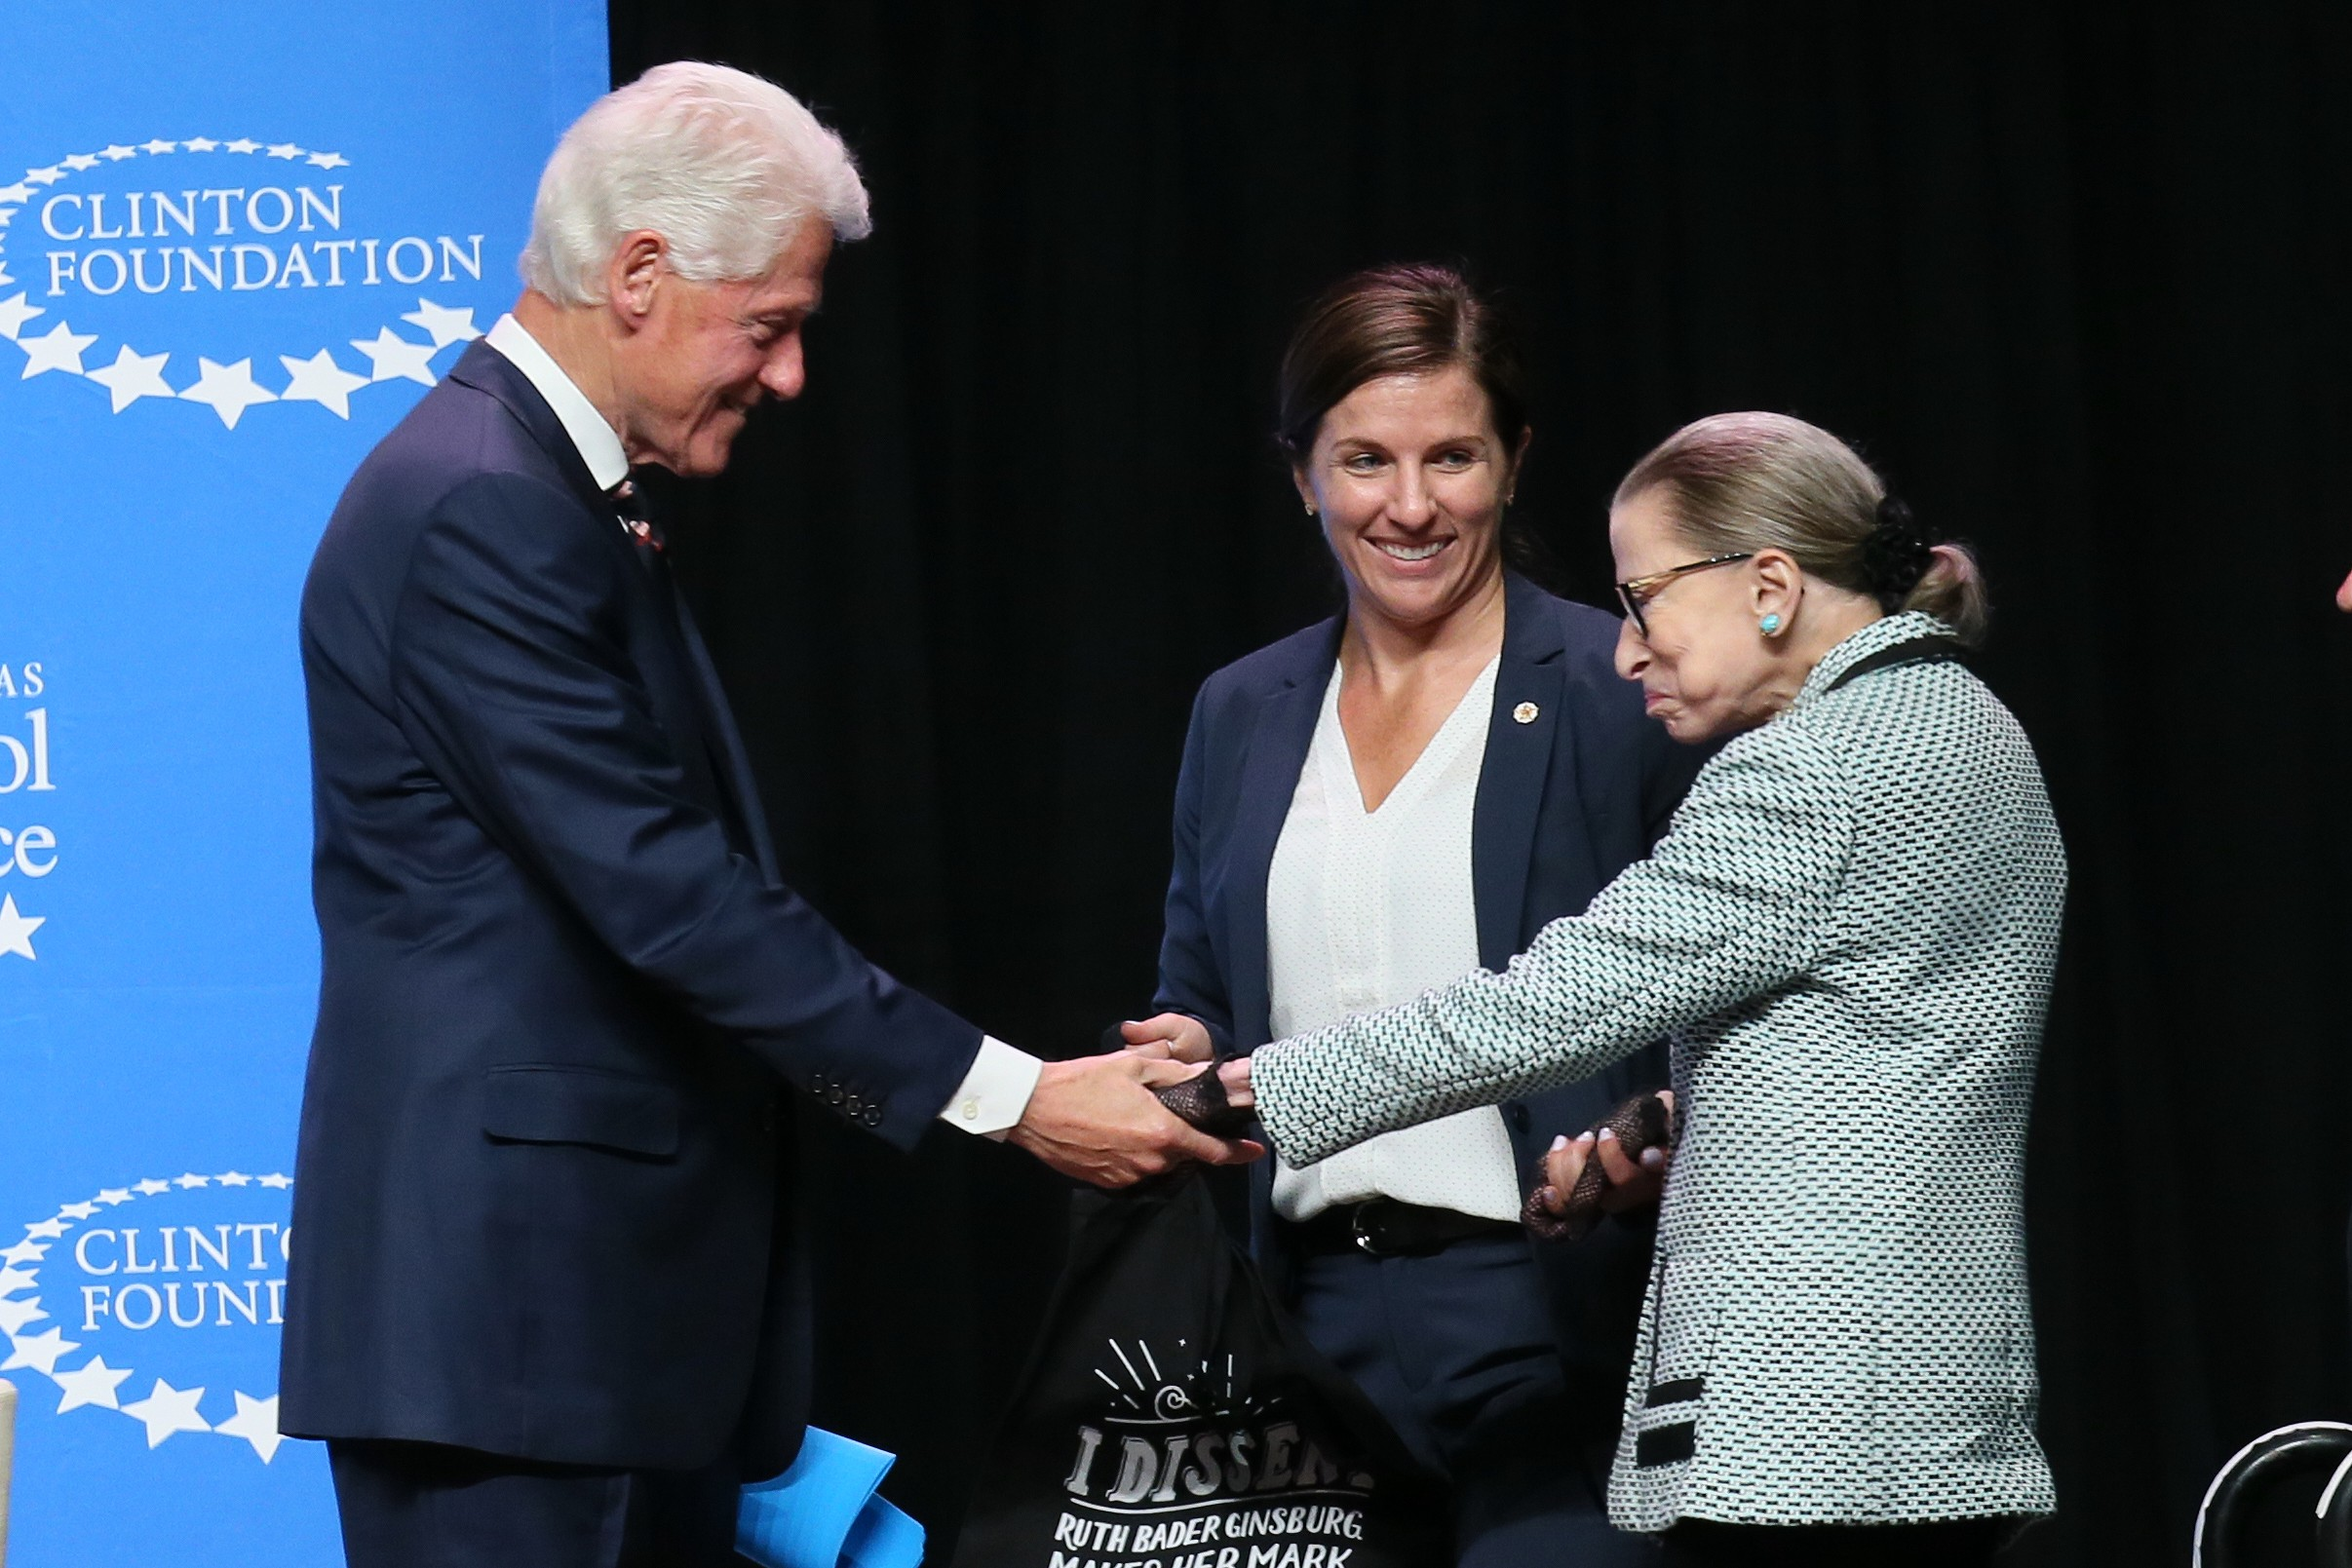 5 Inspiring Quotes From Justice Ruth Bader Ginsburg S Lecture In Little Rock Arkansas By Clinton Foundation The Clinton Foundation